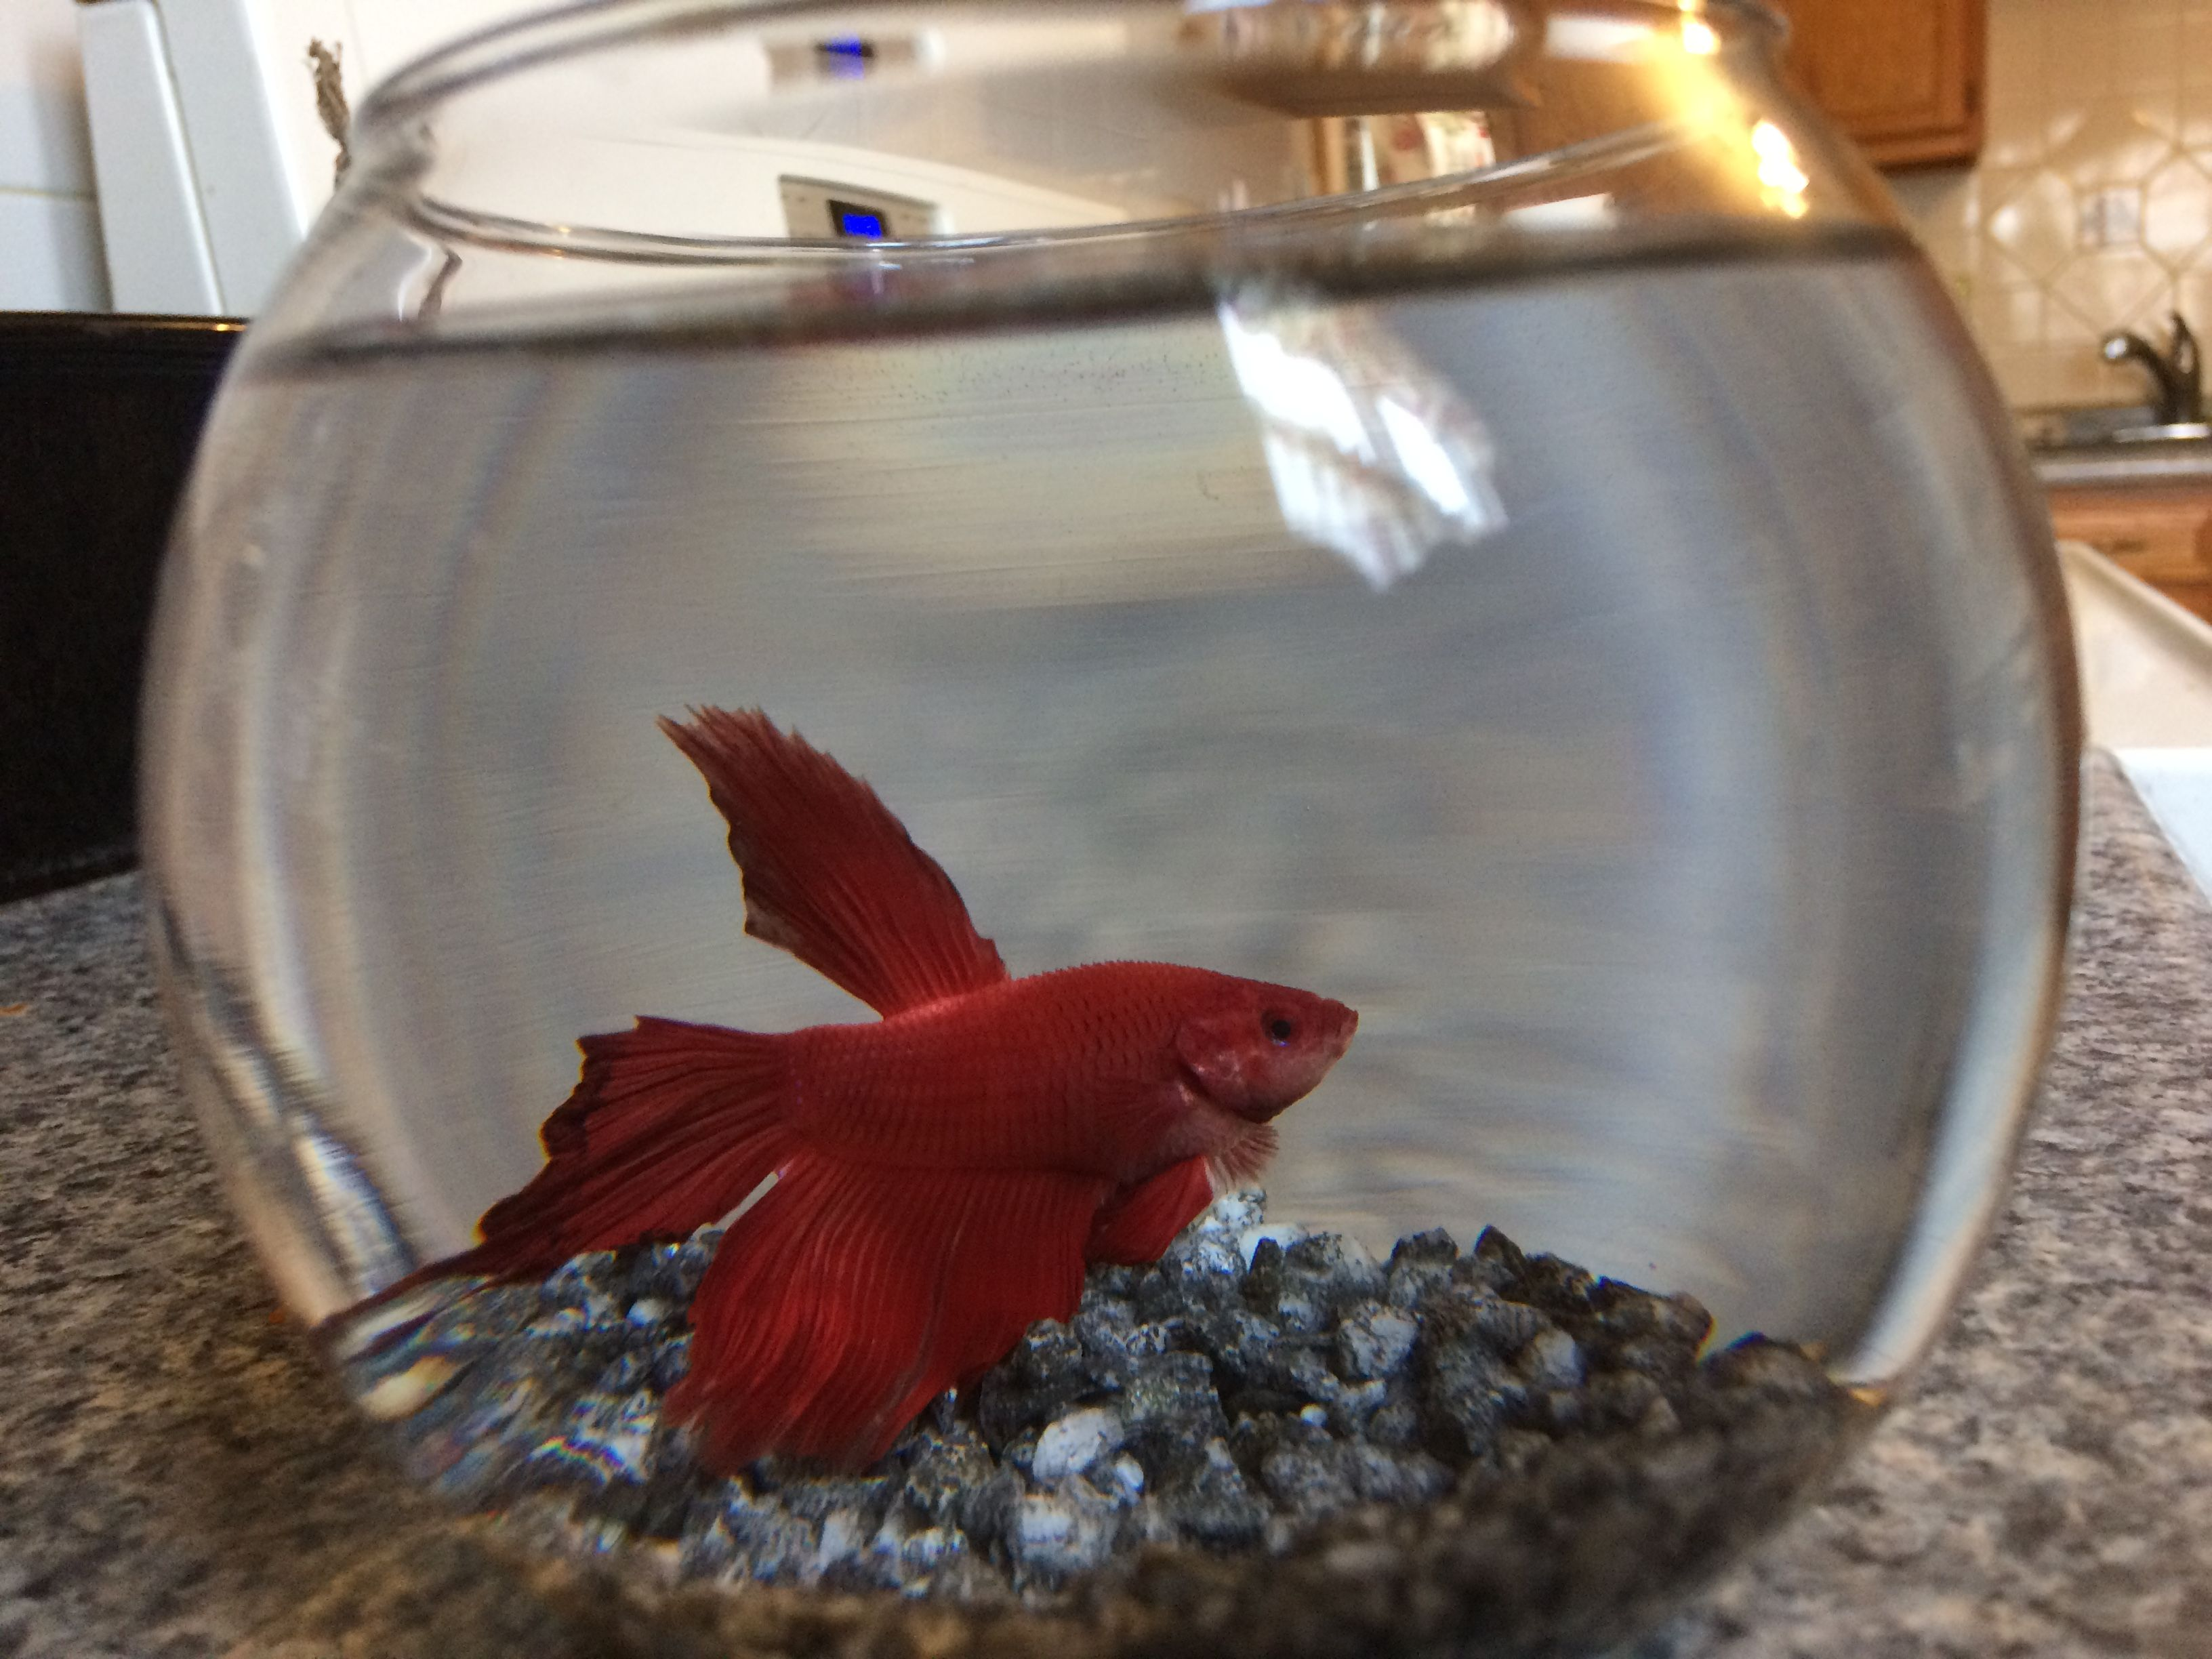 Fish for unfiltered tank - So I Have Had A Red Male Betta Fish For About A Year Now It S Was A Gift From A Close Friend And It Came With A 25gallon Tank